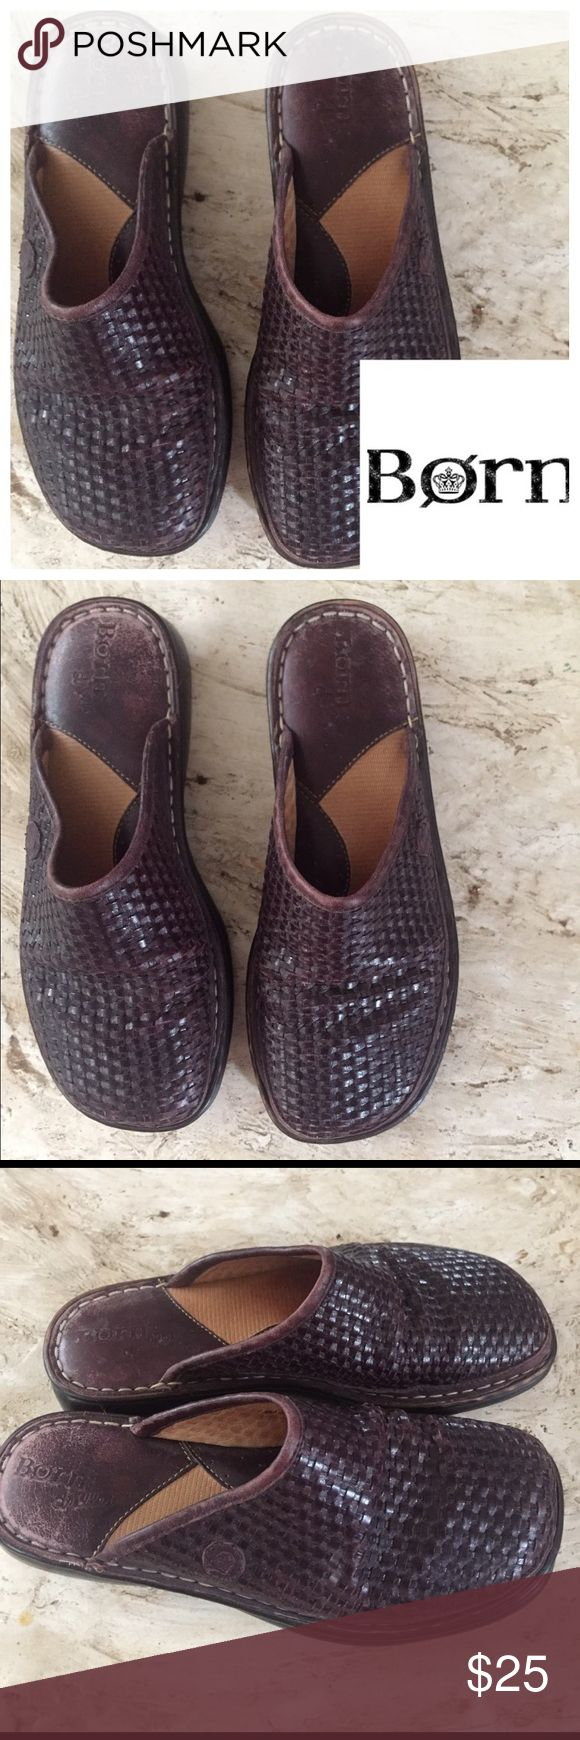 Born Women's Woven Mules. Size 6/36 Born Women's Woven Mules. Size 6/36 worn a few times. Lots of life left in them. Born Shoes Mules & Clogs